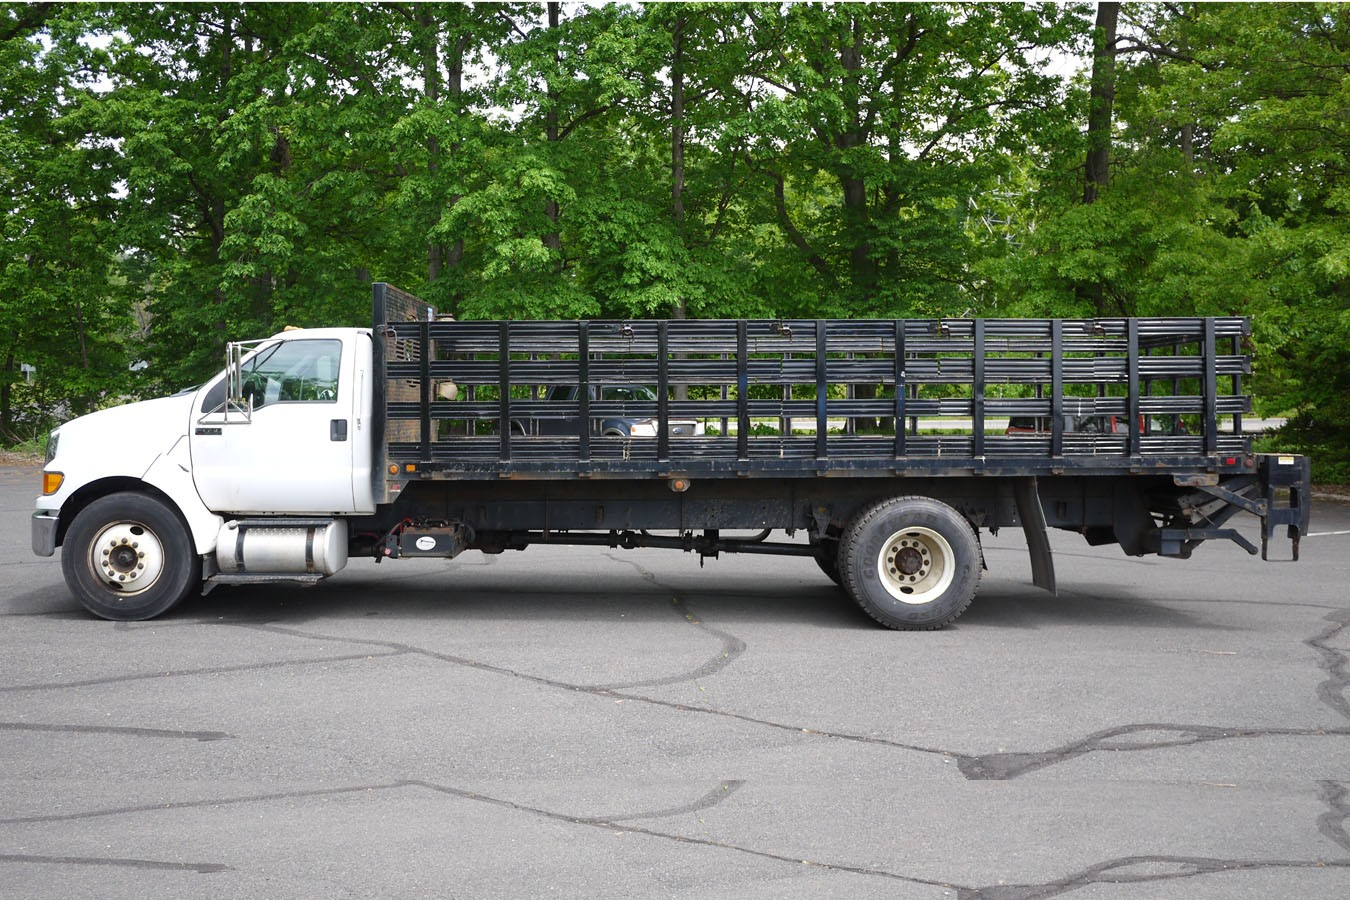 Used, 2013, Other, FORD F650 S/DUTY W/ 22' STEEL FLATBED, Other